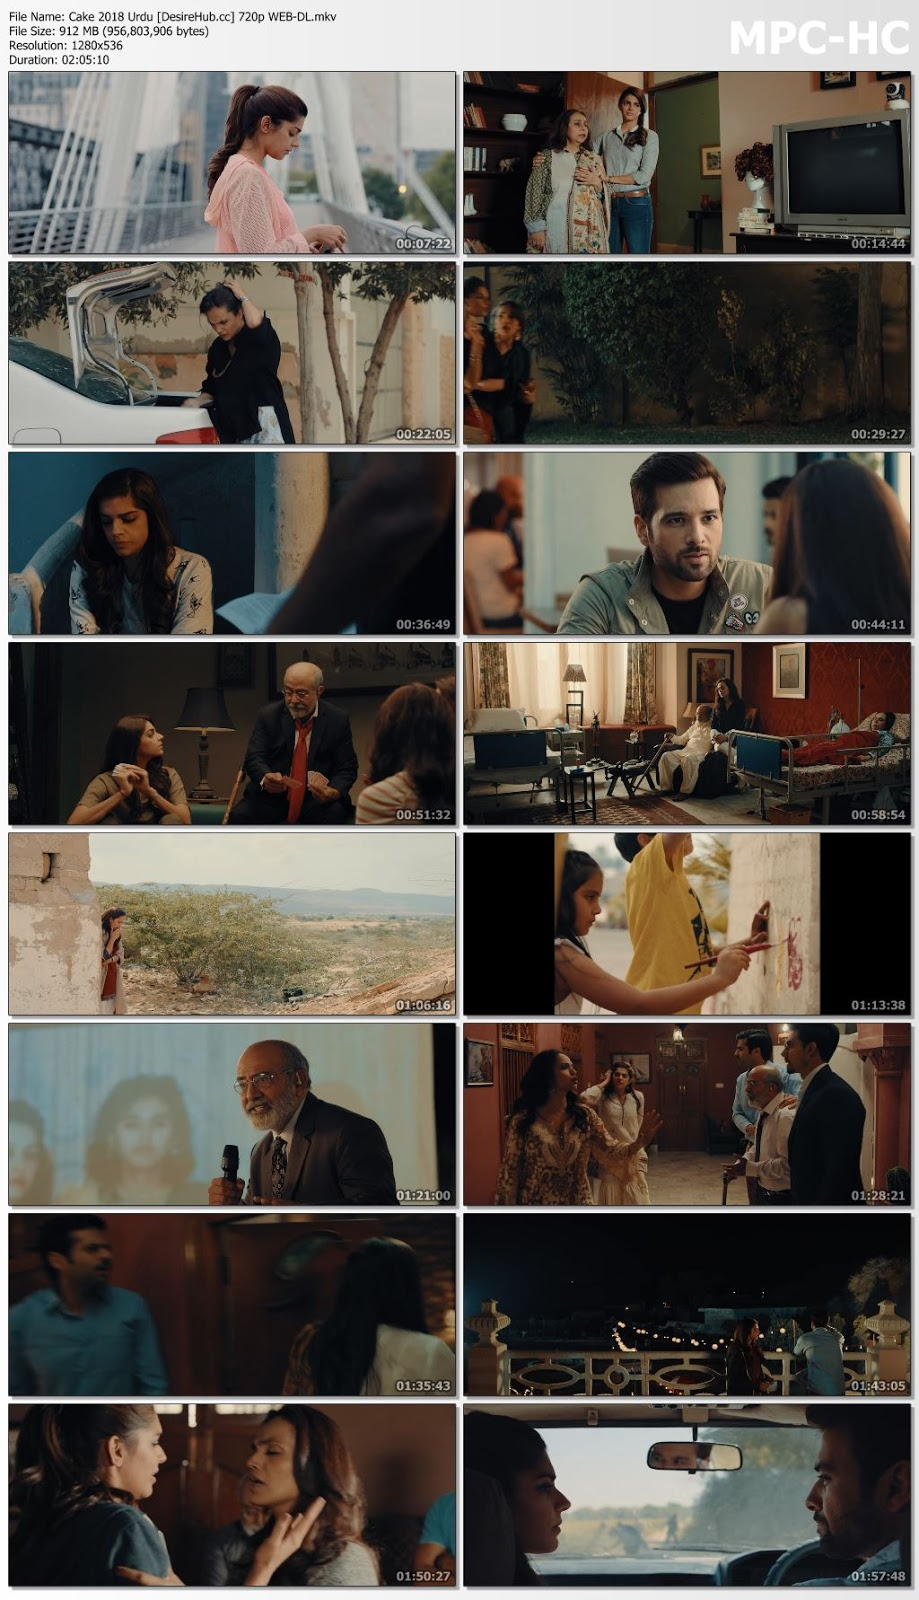 Cake 2018 Urdu 480p WEB-DL 350MB Desirehub